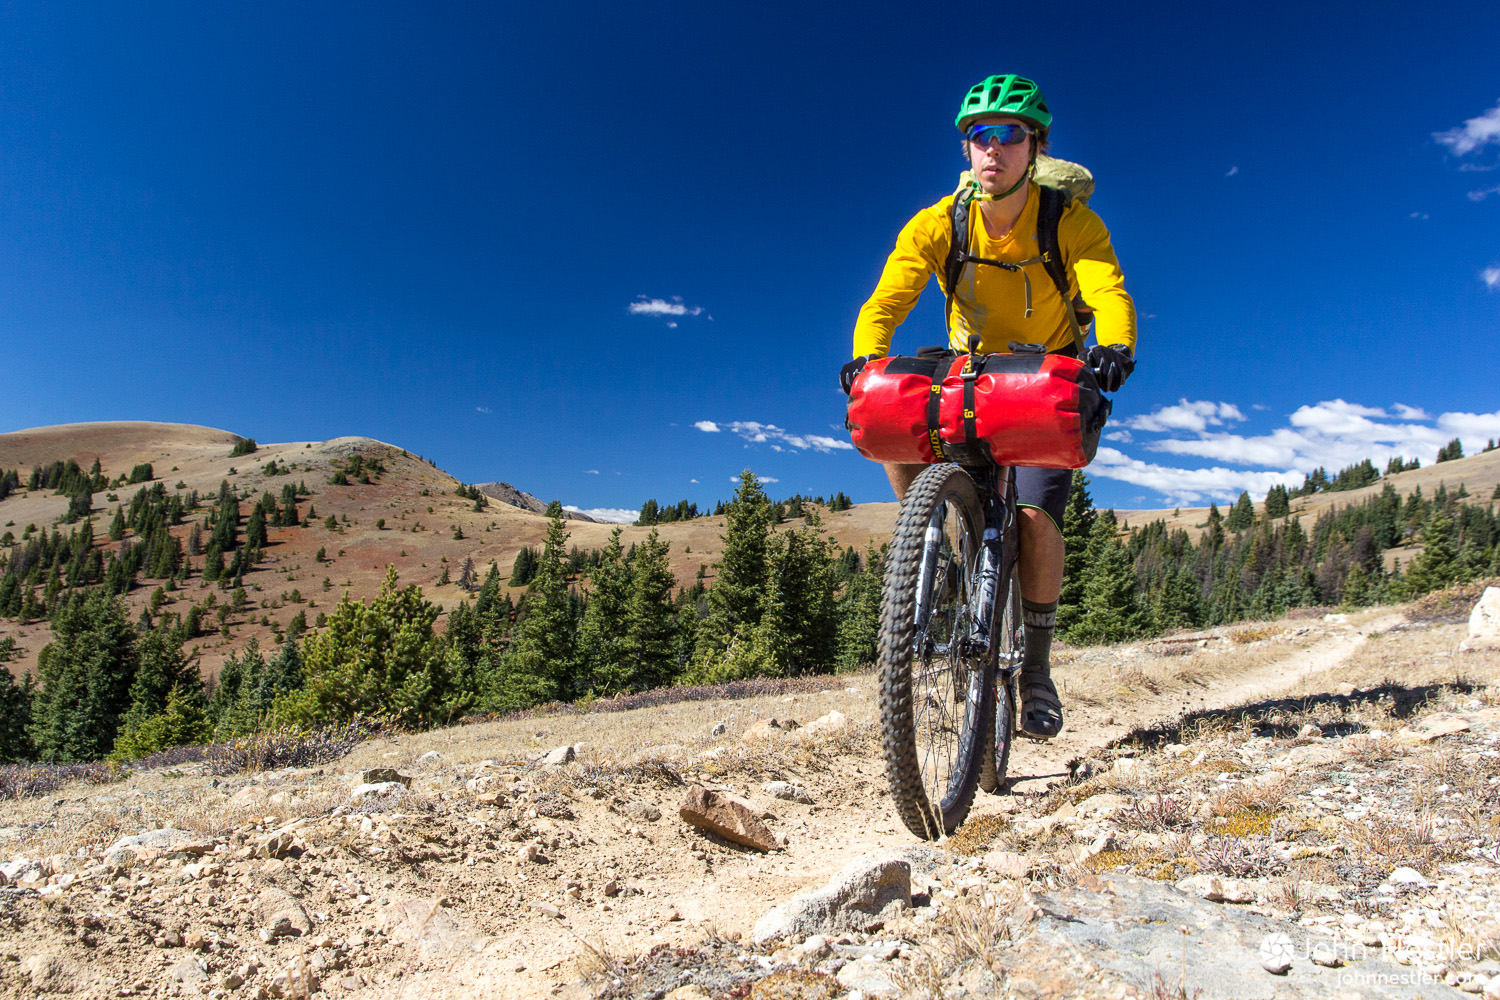 Enjoying a beautiful bit of riding around treeline where the Colorado Trail intersects the Monarch Crest Trail momentarily in Segment 15. Smooth, flowy trails with bluebird skies made for a memorable day.